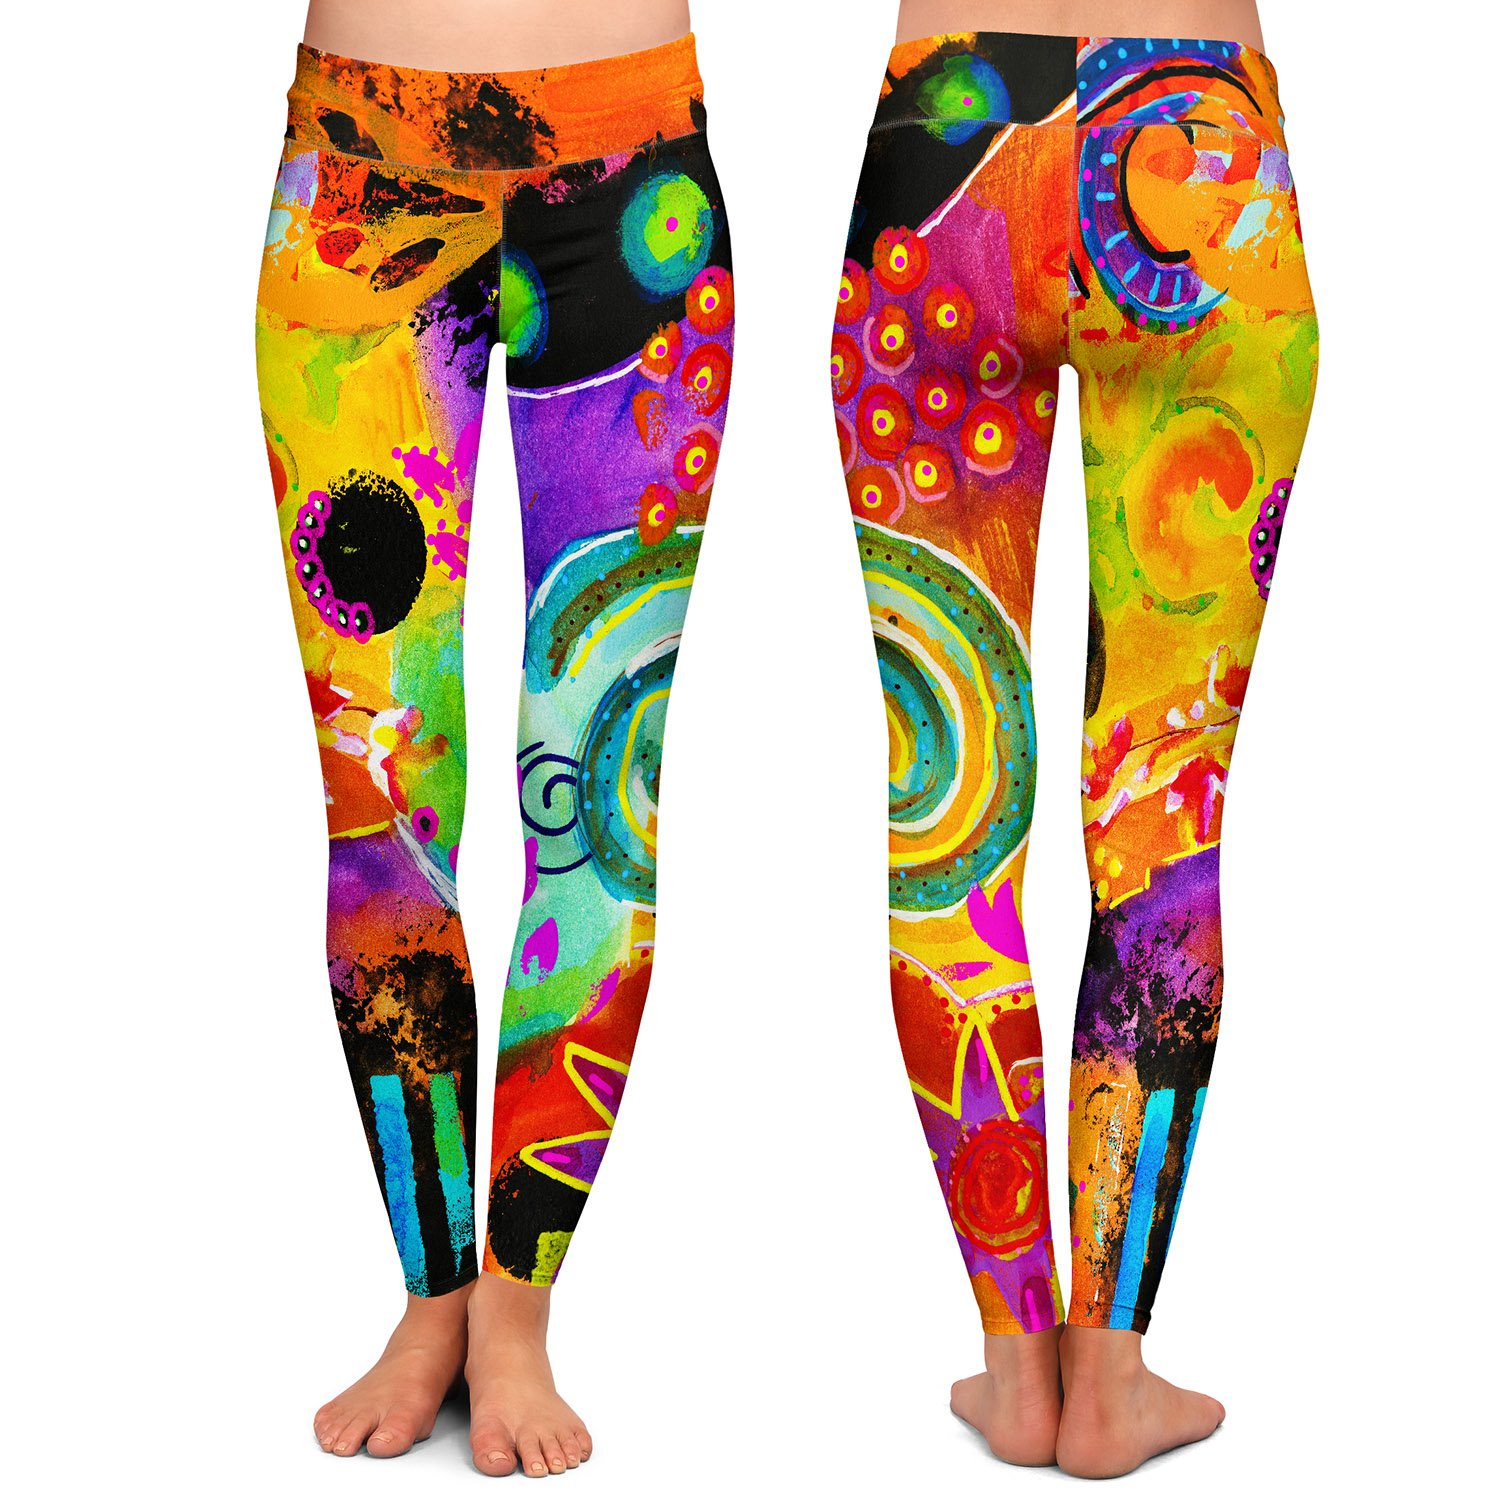 Athletic Yoga Leggings from DiaNoche Designs by China Carnella Crazy Abstract I